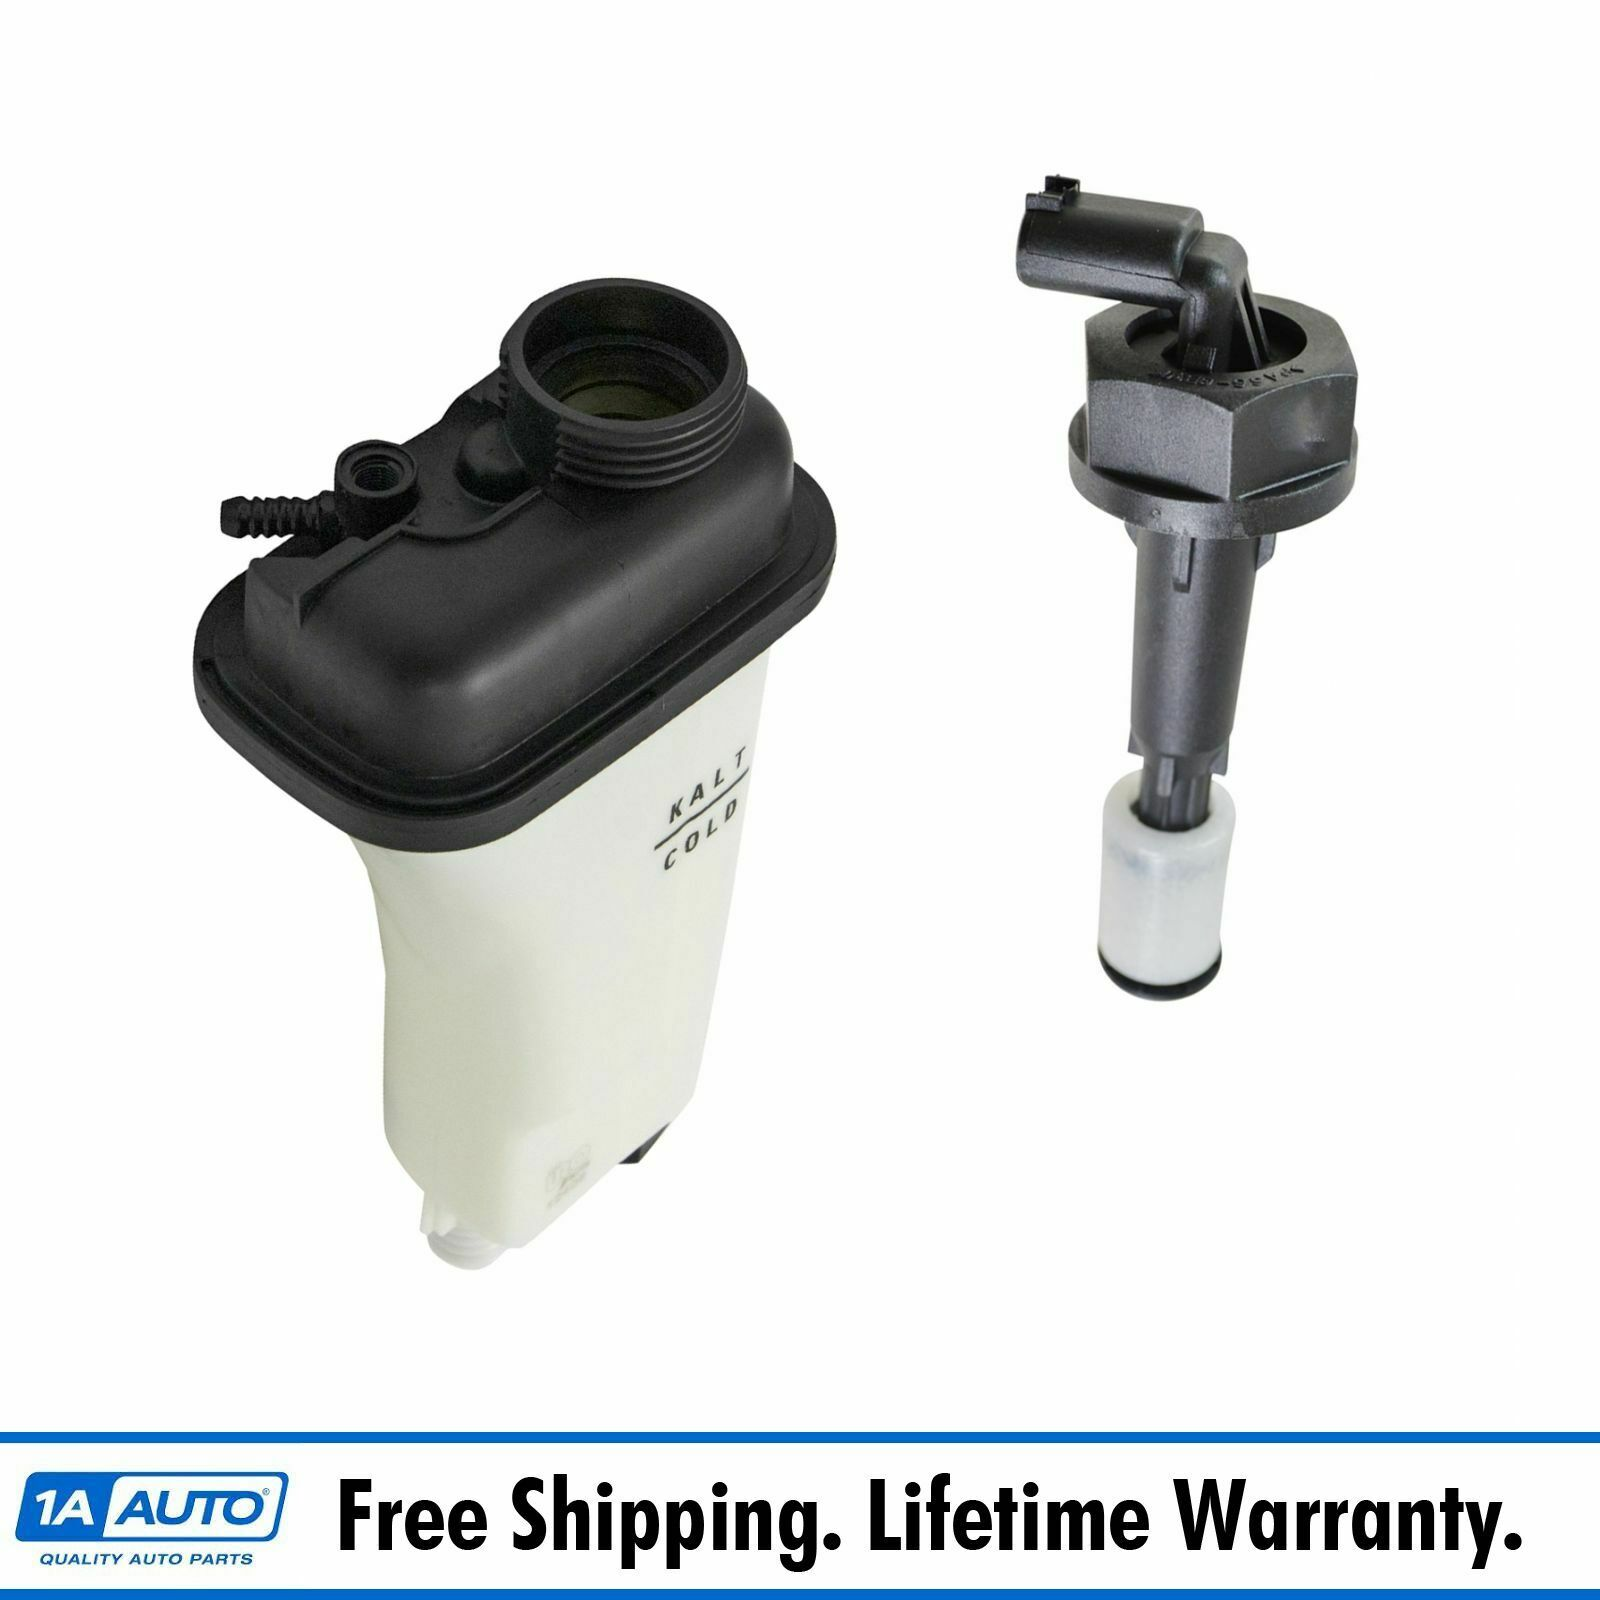 Radiator Coolant Overflow Tank Bottle Reservoir With Level Sensor Bmw 525i Expansion Cap For 1 Of 4only Available